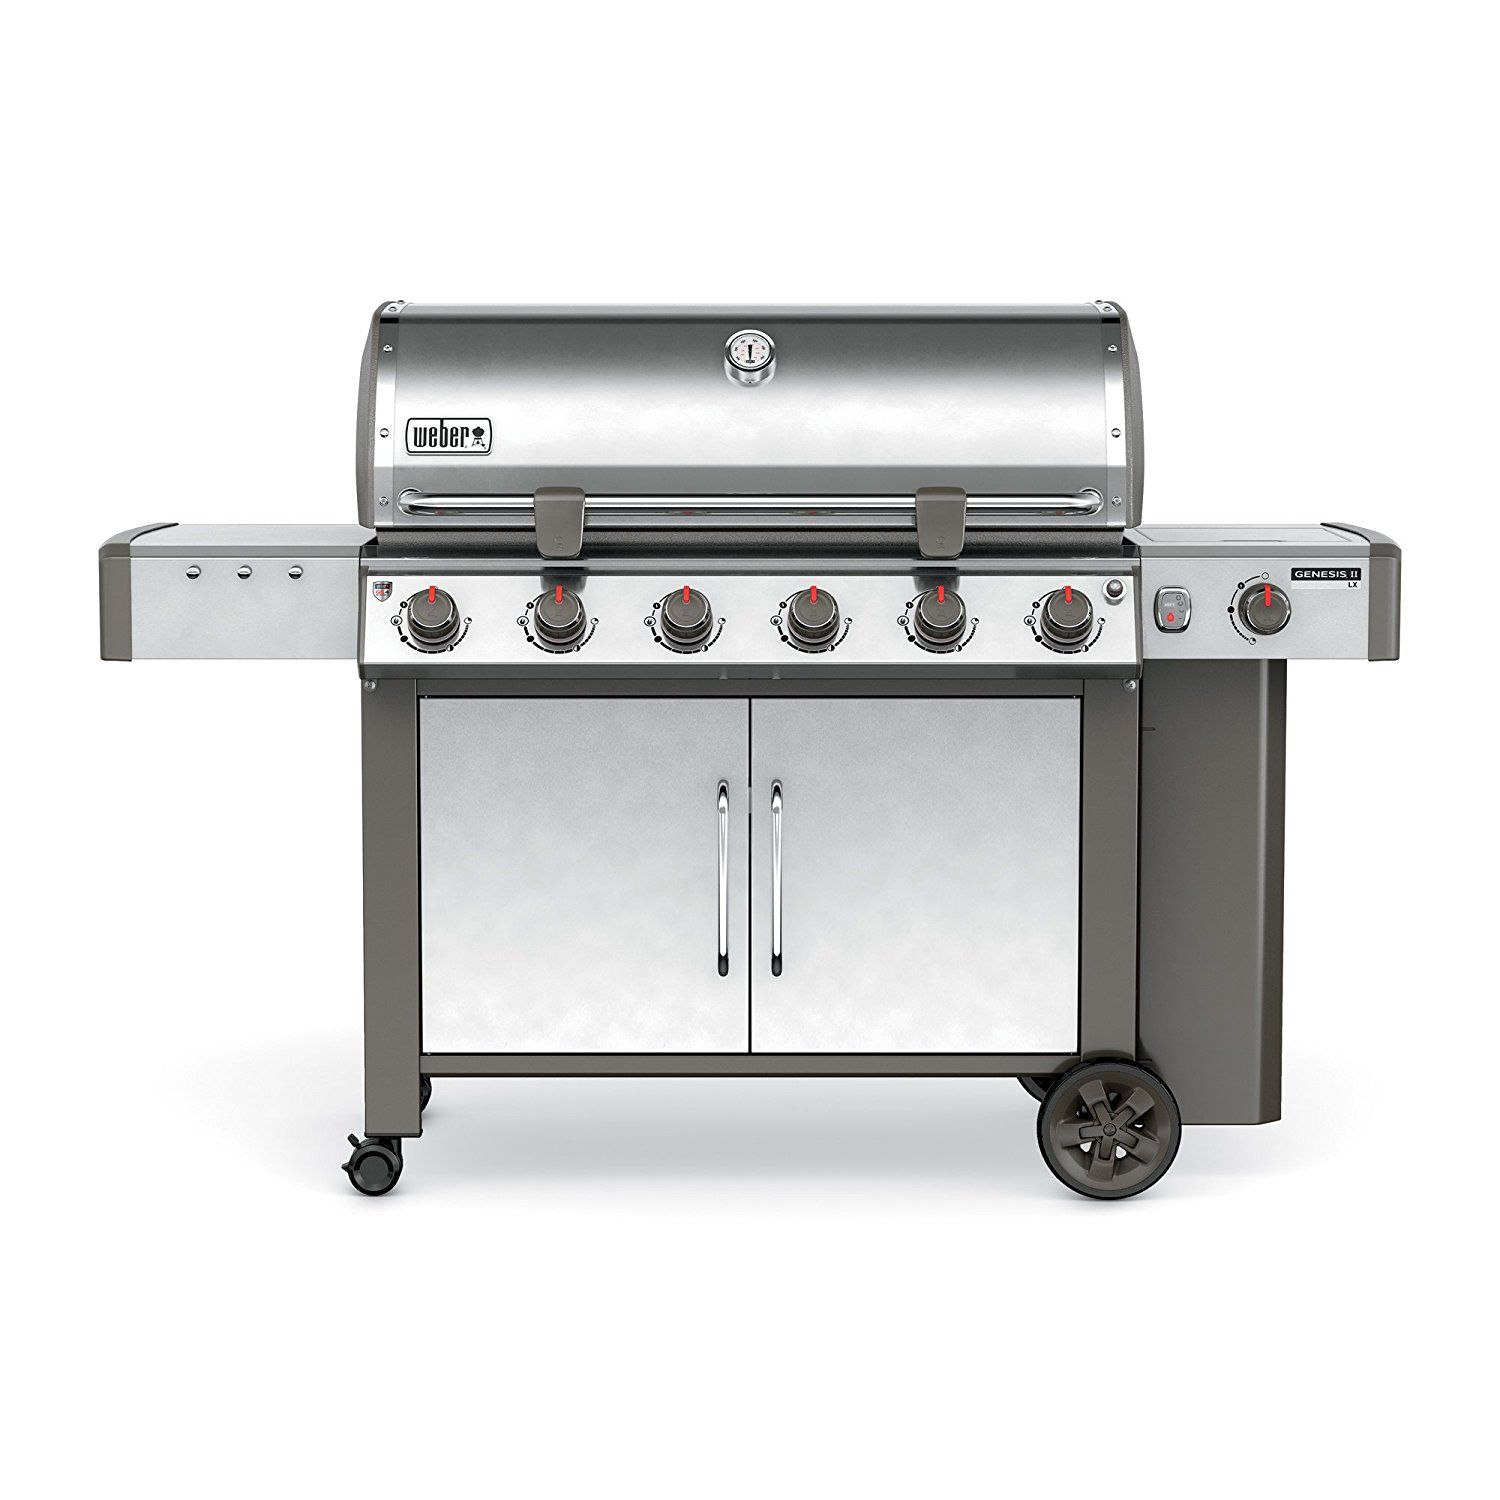 Weber 63004001 Genesis Ii Lx S 640 Liquid Propane Grill In Affordable Price At Grill Parts Hub Gs4 Grilling System Include Gas Grill Gas Bbq Natural Gas Grill